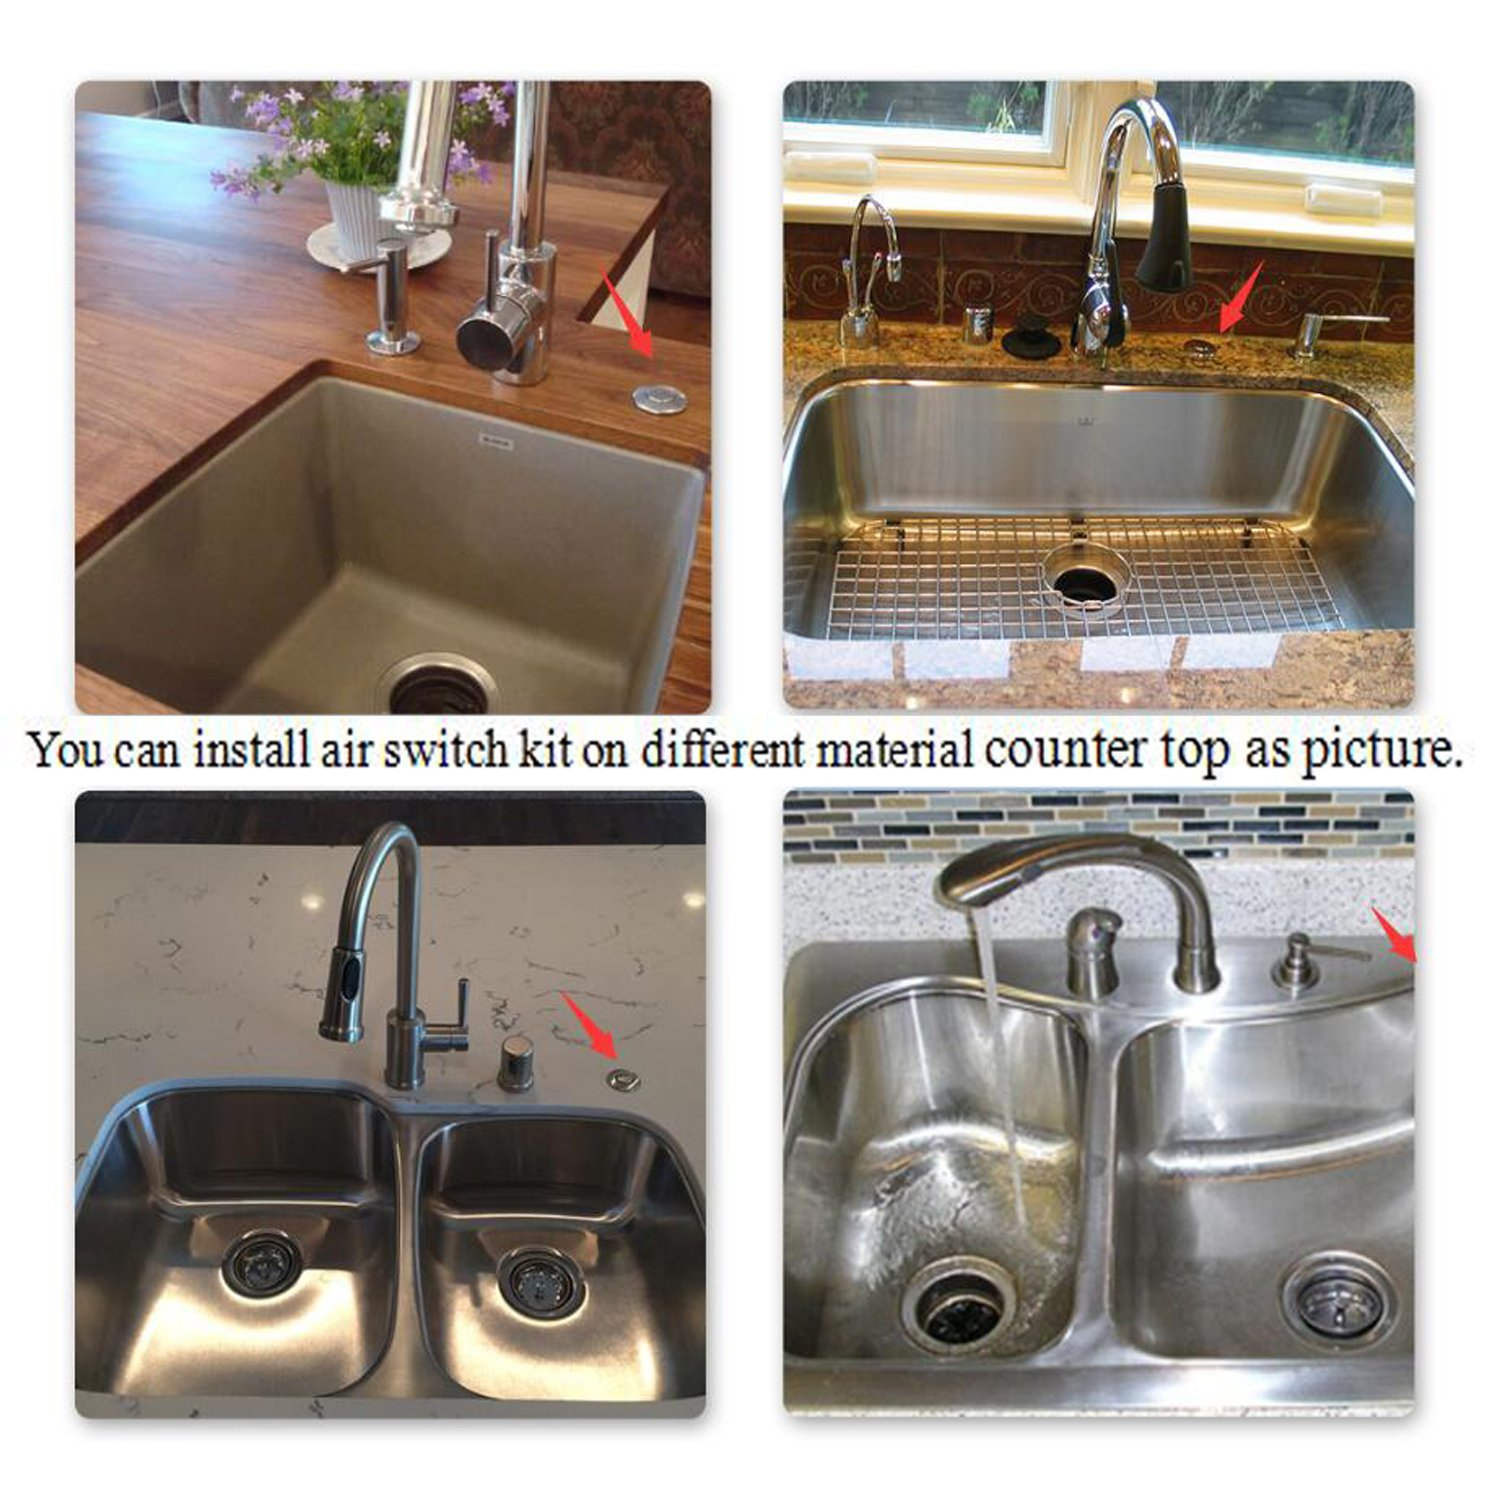 Sink Top Air Switch Kit Garbage Disposal Part Built Out